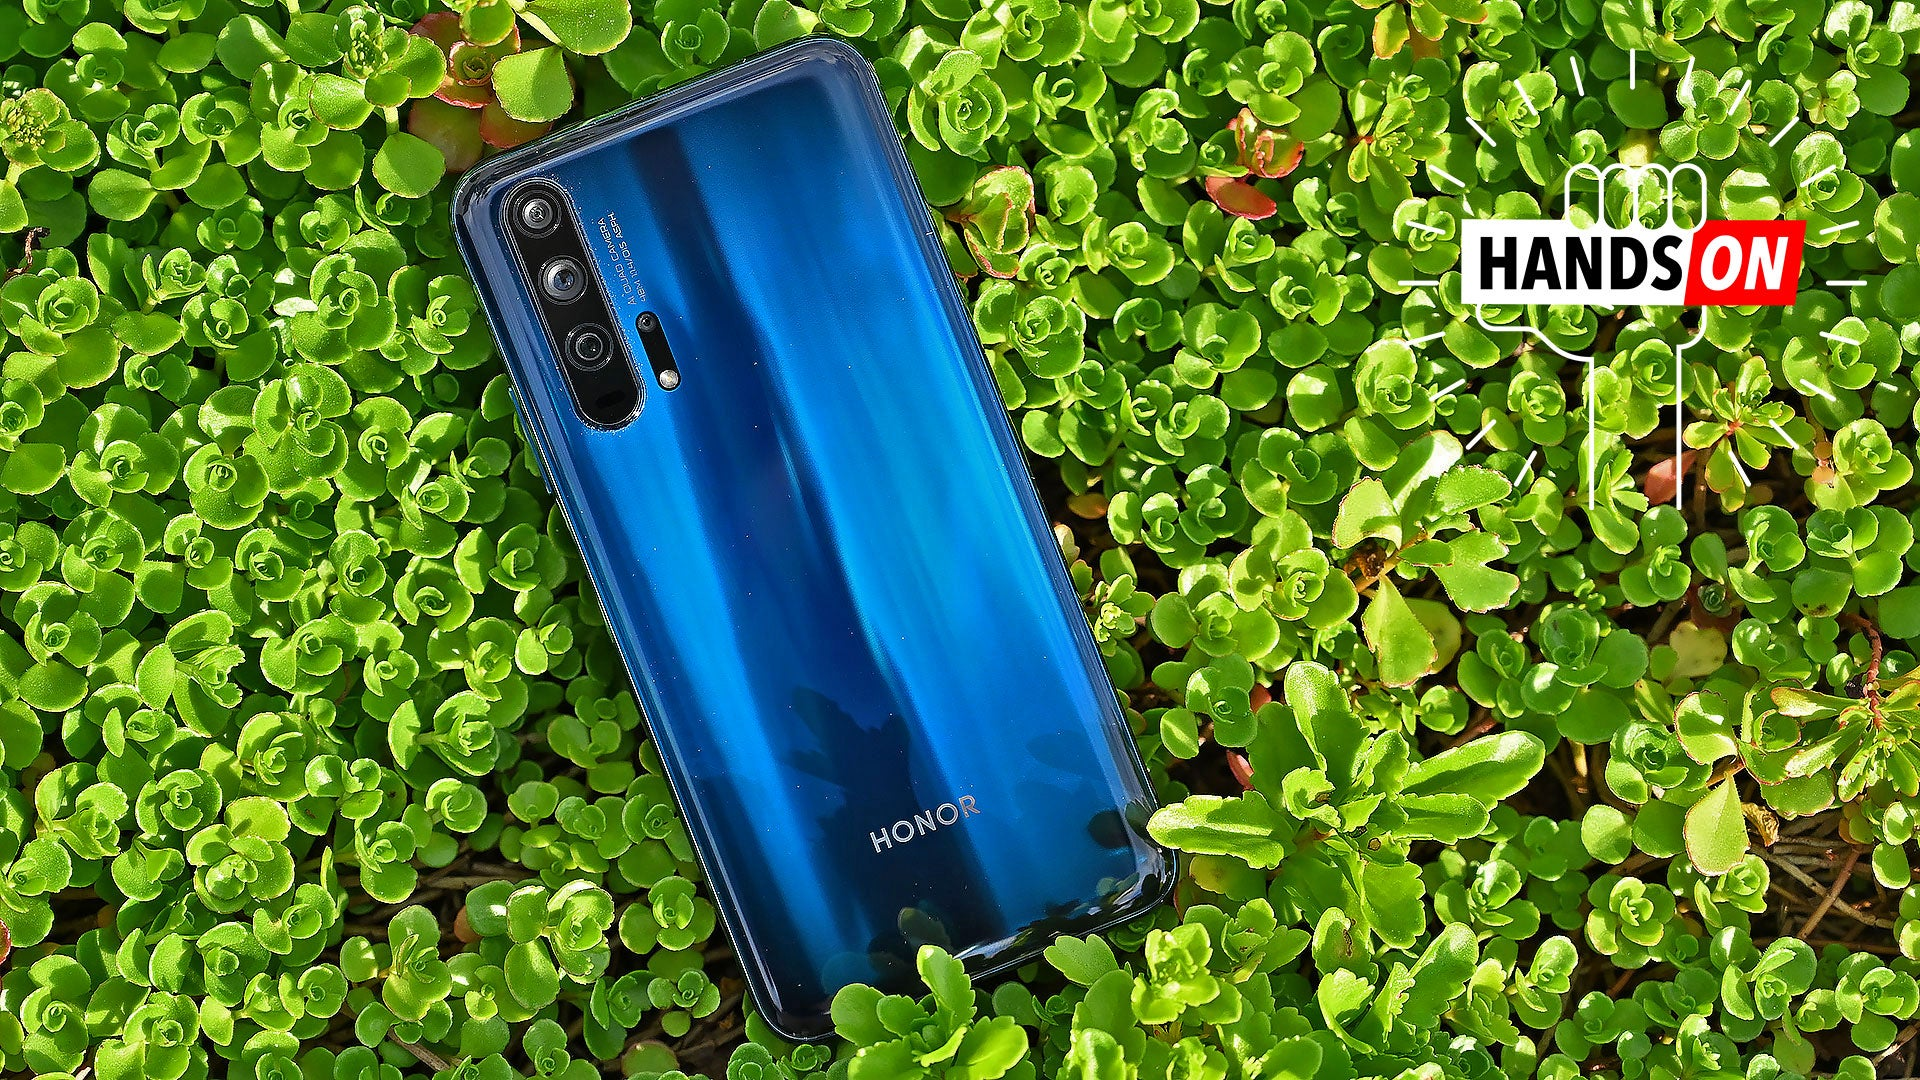 The Camera-Packed Honor 20 Pro Could Be The First Gadget Casualty Of The Trade War